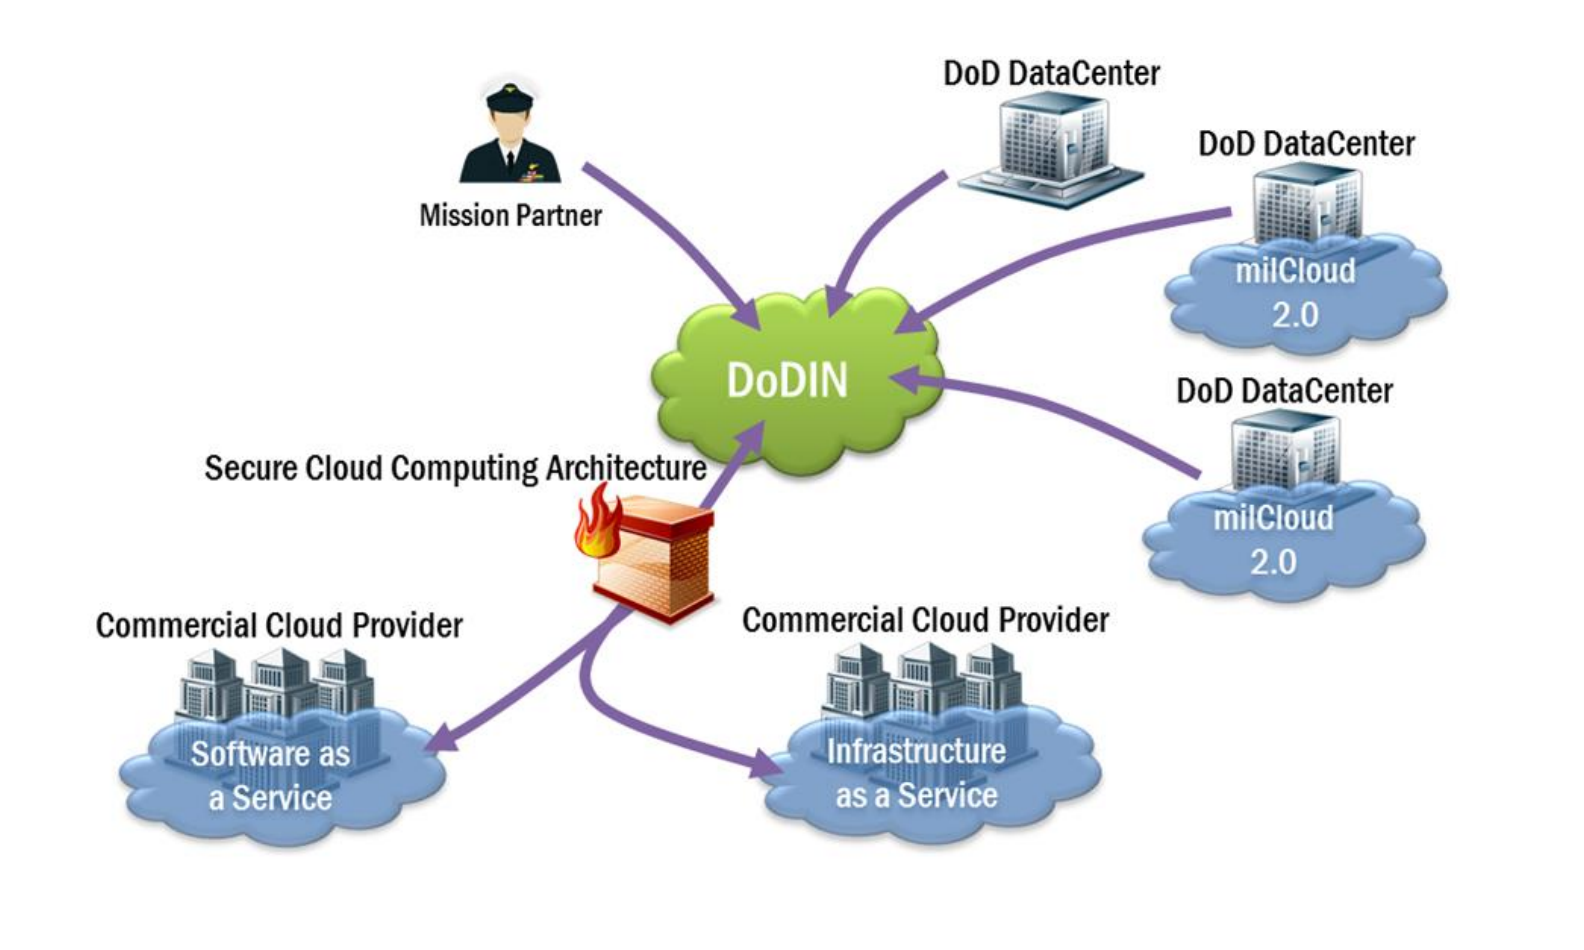 DISA awards CSRA $498M-ceiling milCloud 2 0 contract » TechTaffy